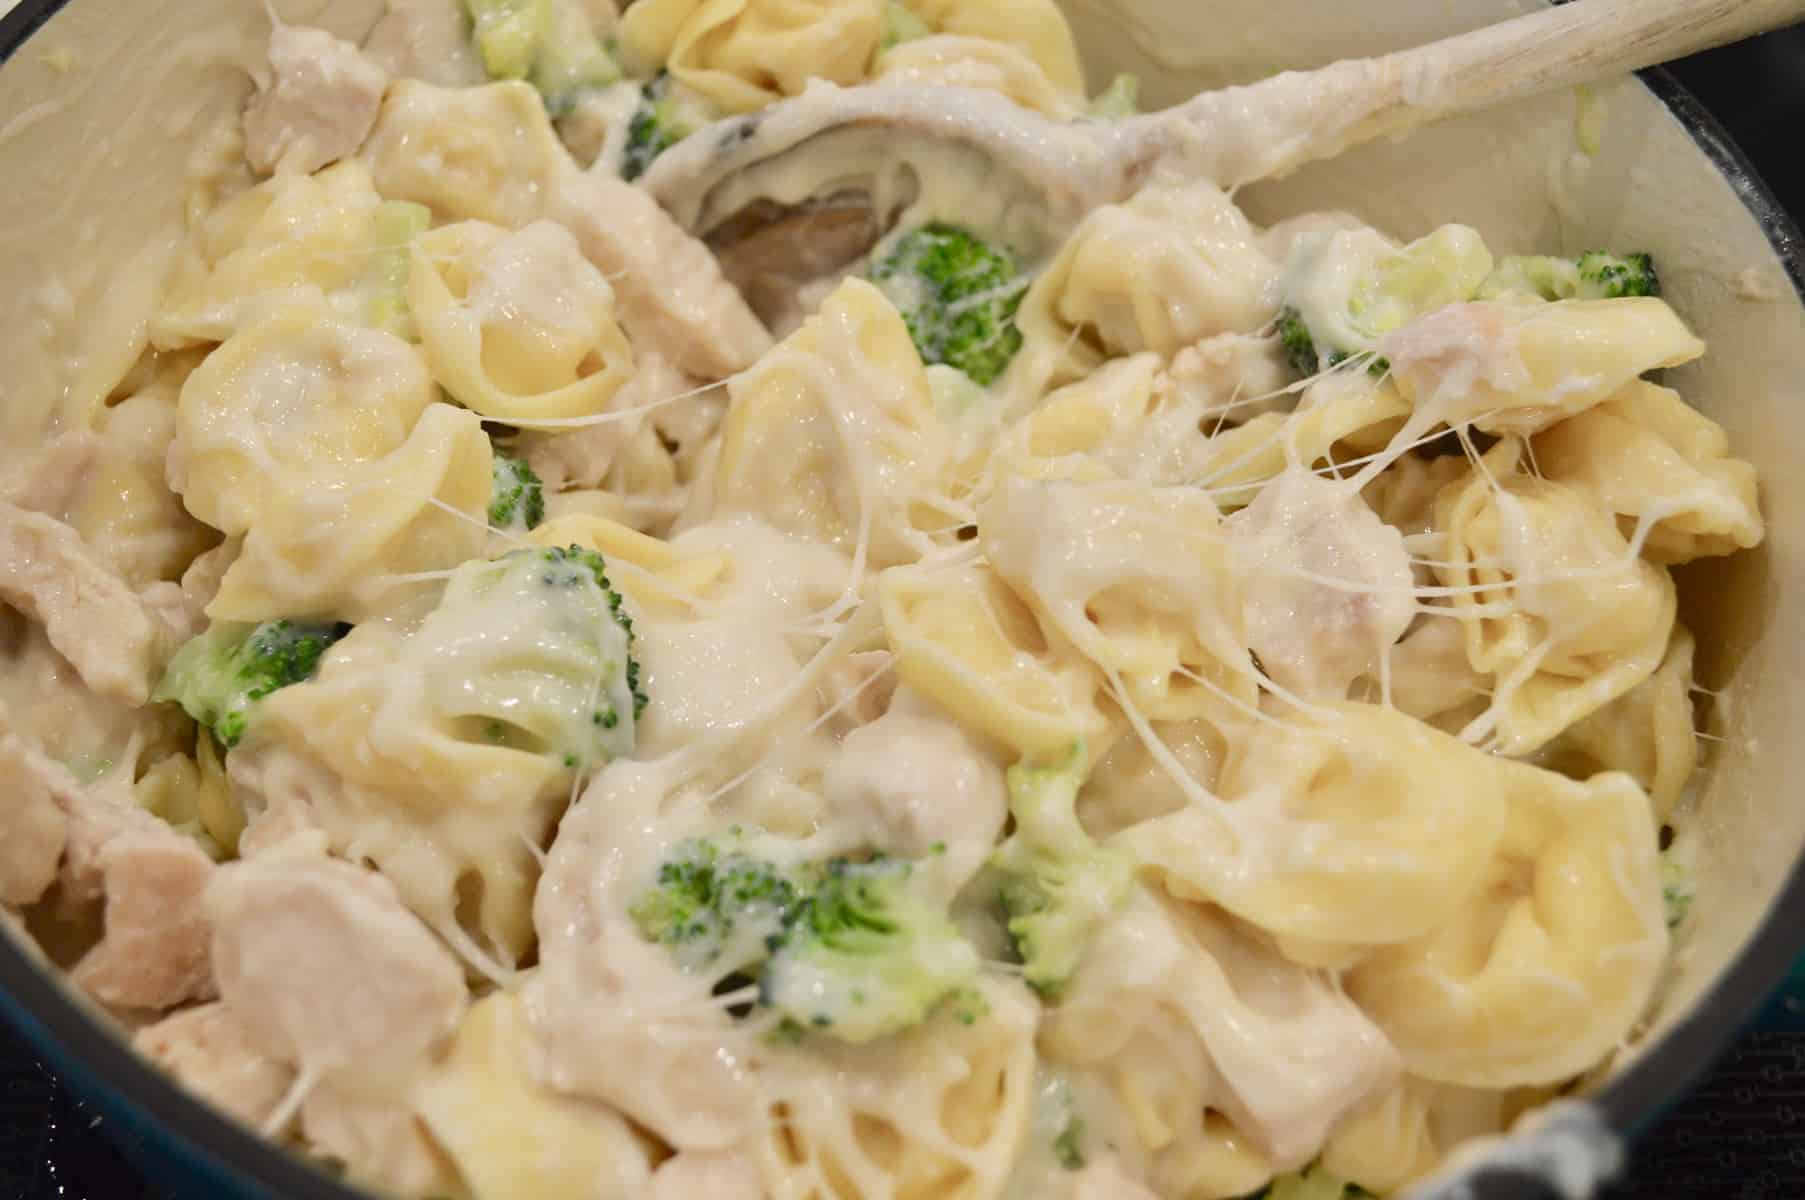 Chicken and Broccoli Tortellini in a large pot on the stove